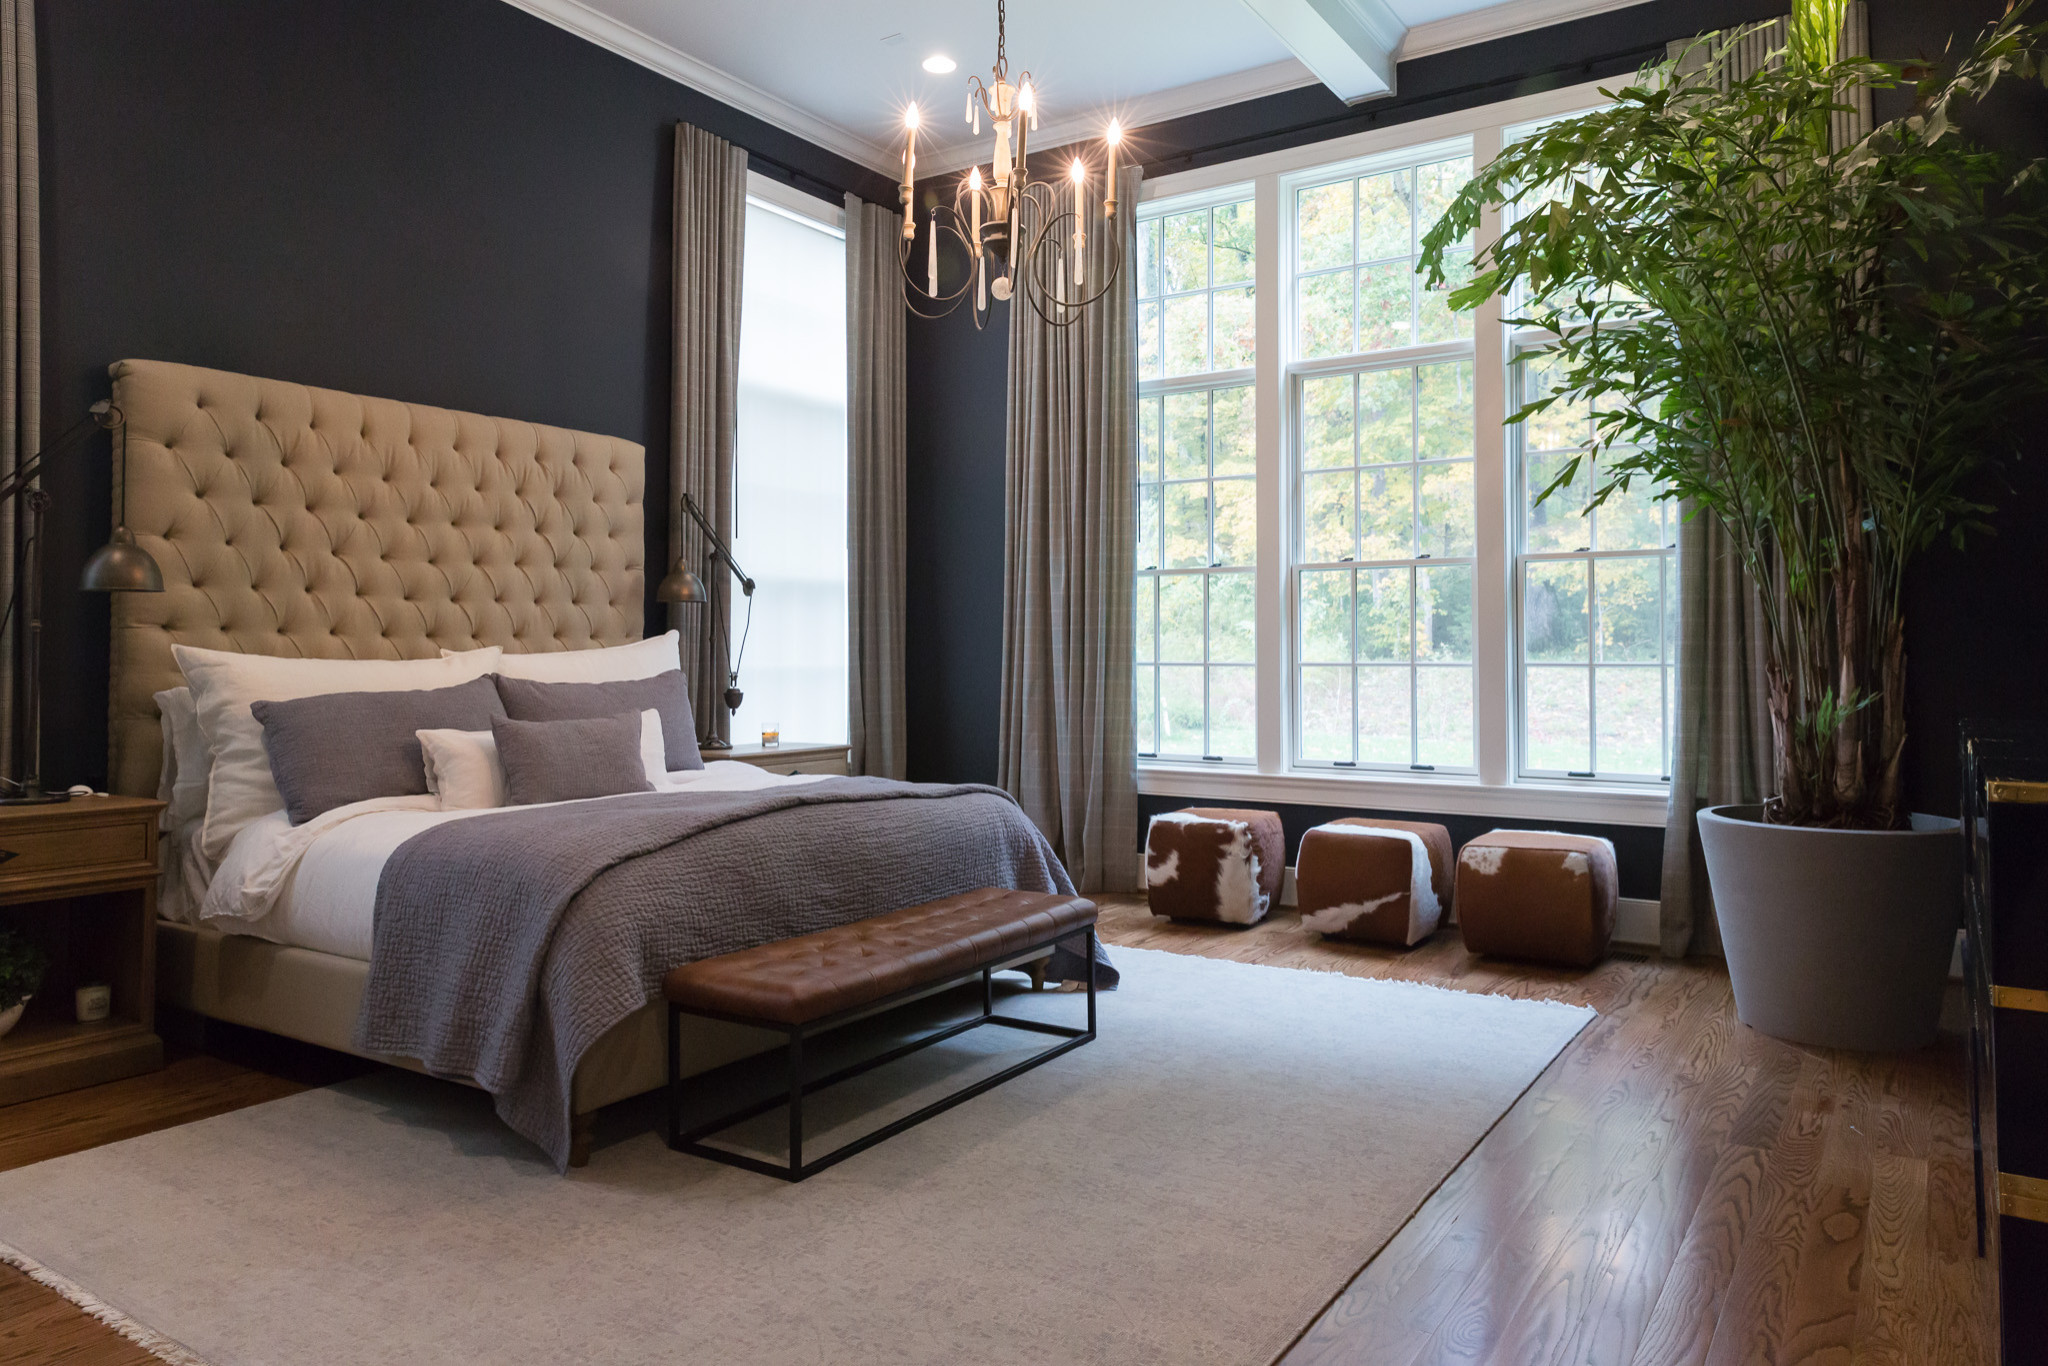 75 Beautiful Bedroom With Black Walls Pictures Ideas April 2021 Houzz